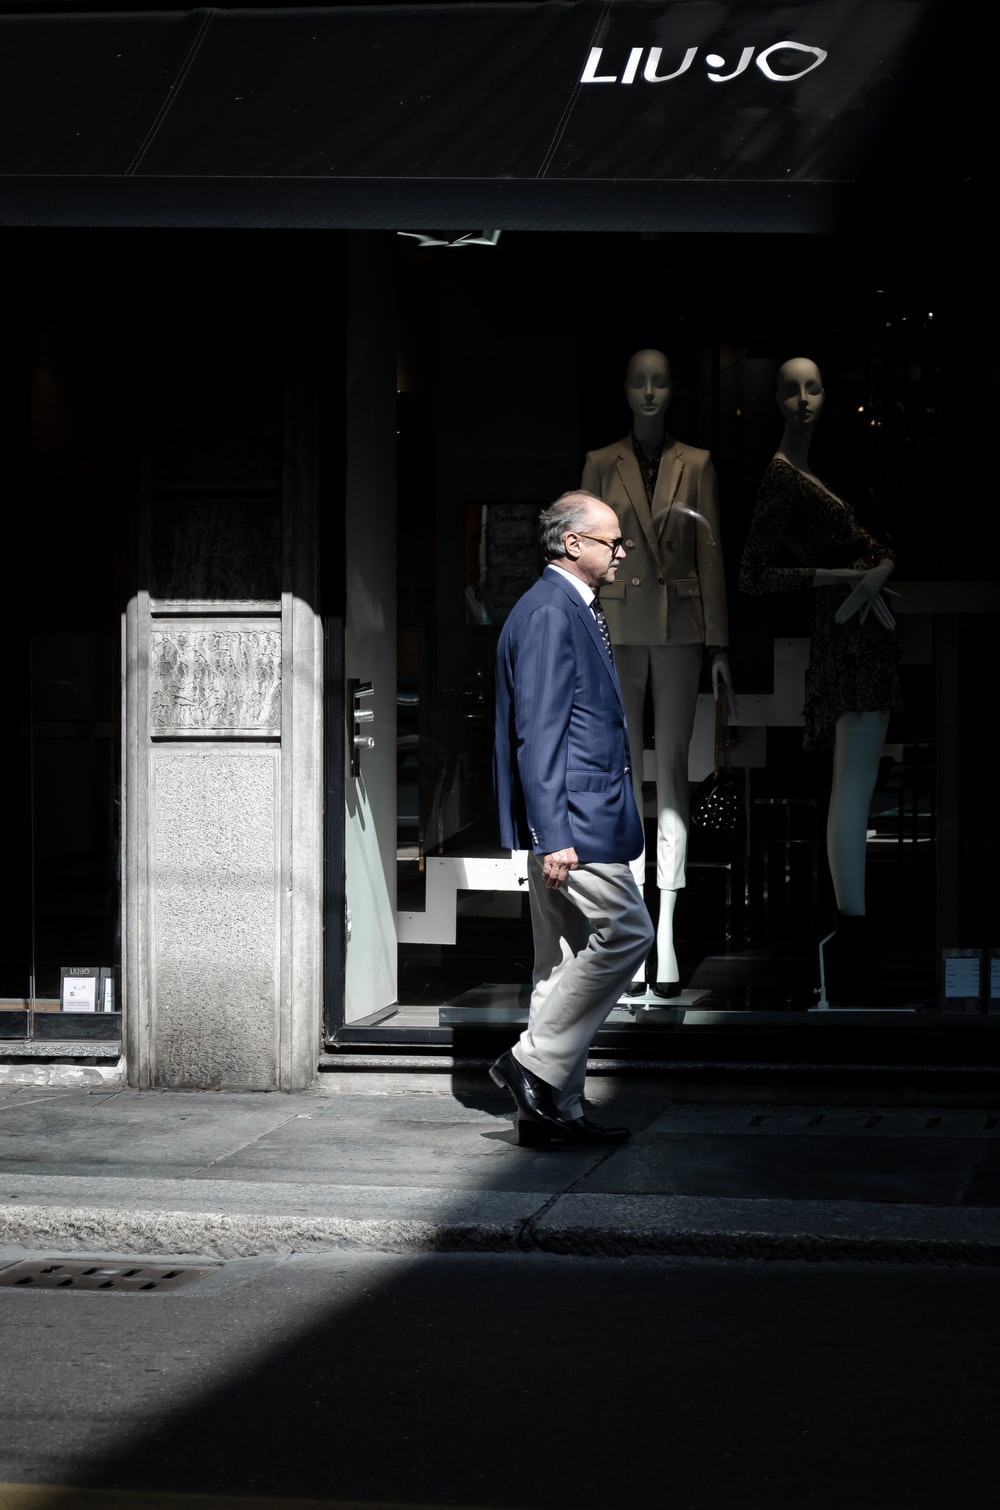 man in blue button up shirt and white pants walking on sidewalk during daytime